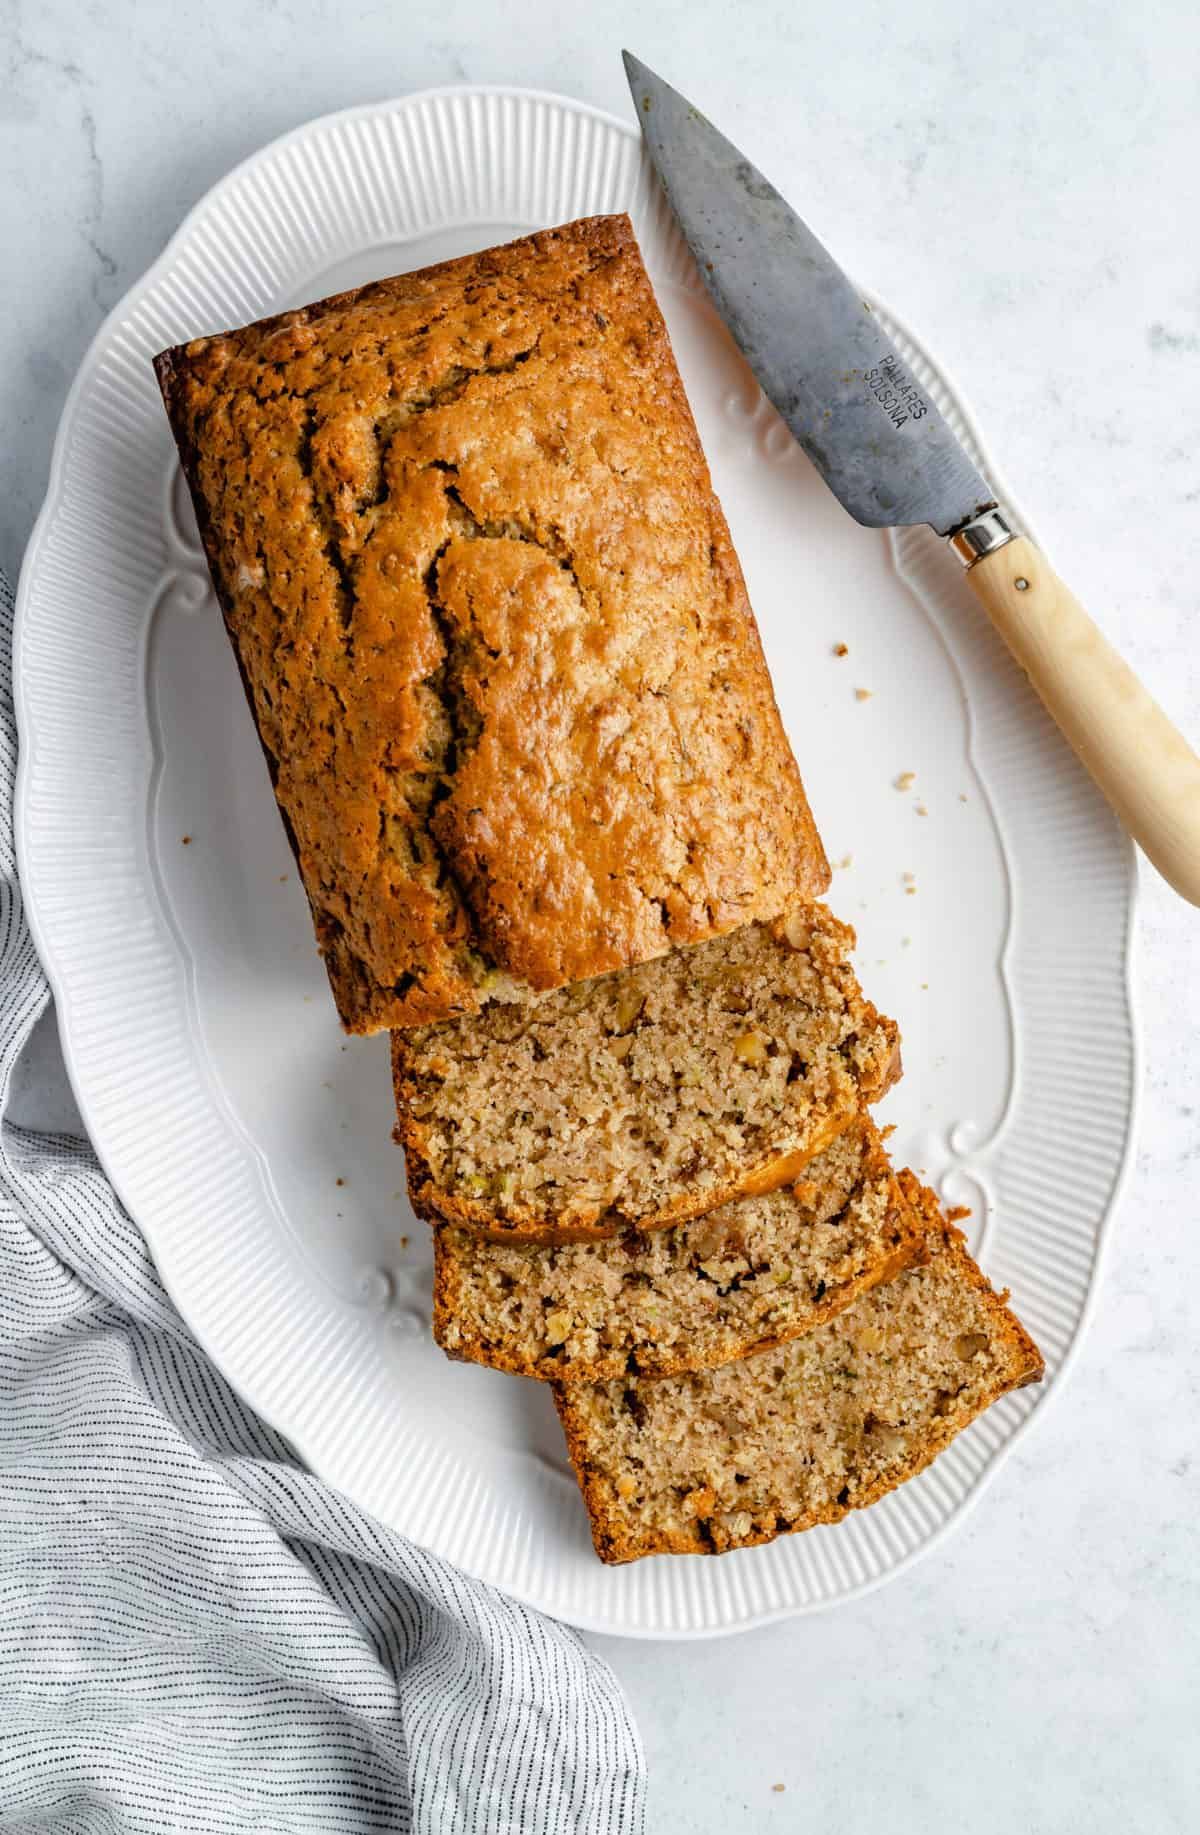 Sliced loaf of zucchini bread.